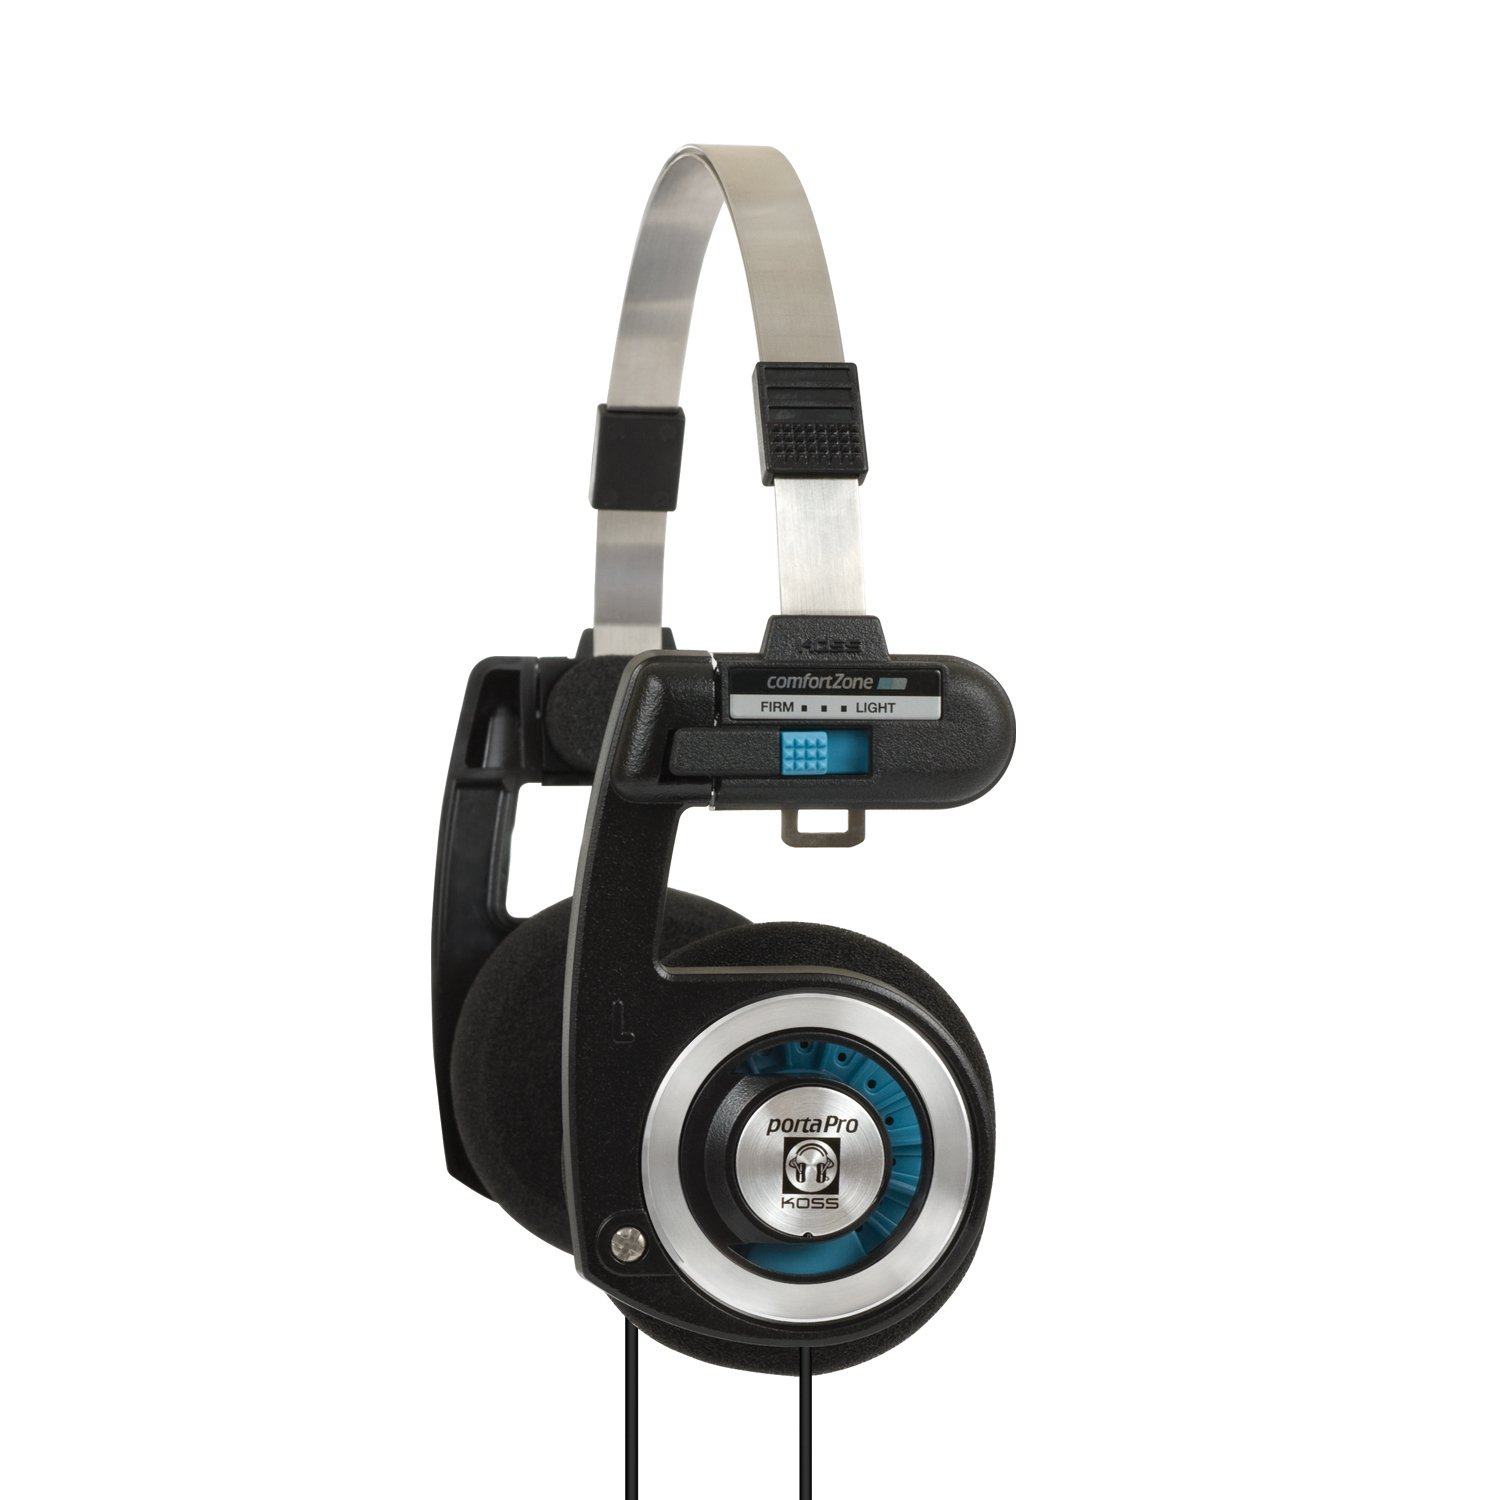 Koss Porta Pro On Ear Headphones with Case, Black / Silver